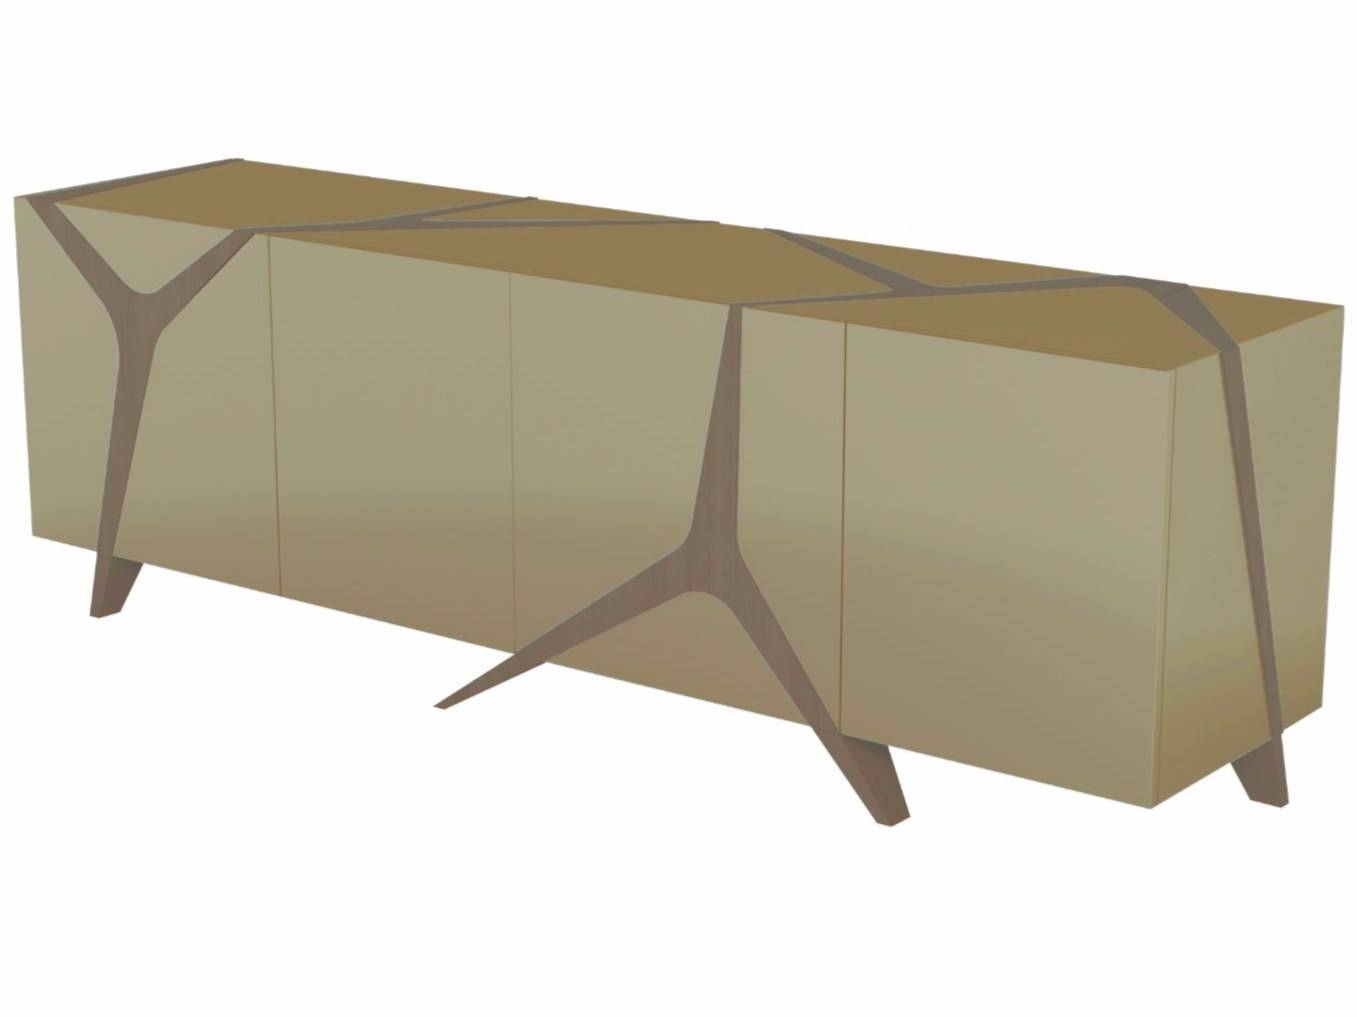 Rosace | Sideboard Les Contemporains Collectionroche Bobois With Regard To Roche Bobois Sideboards (View 12 of 15)